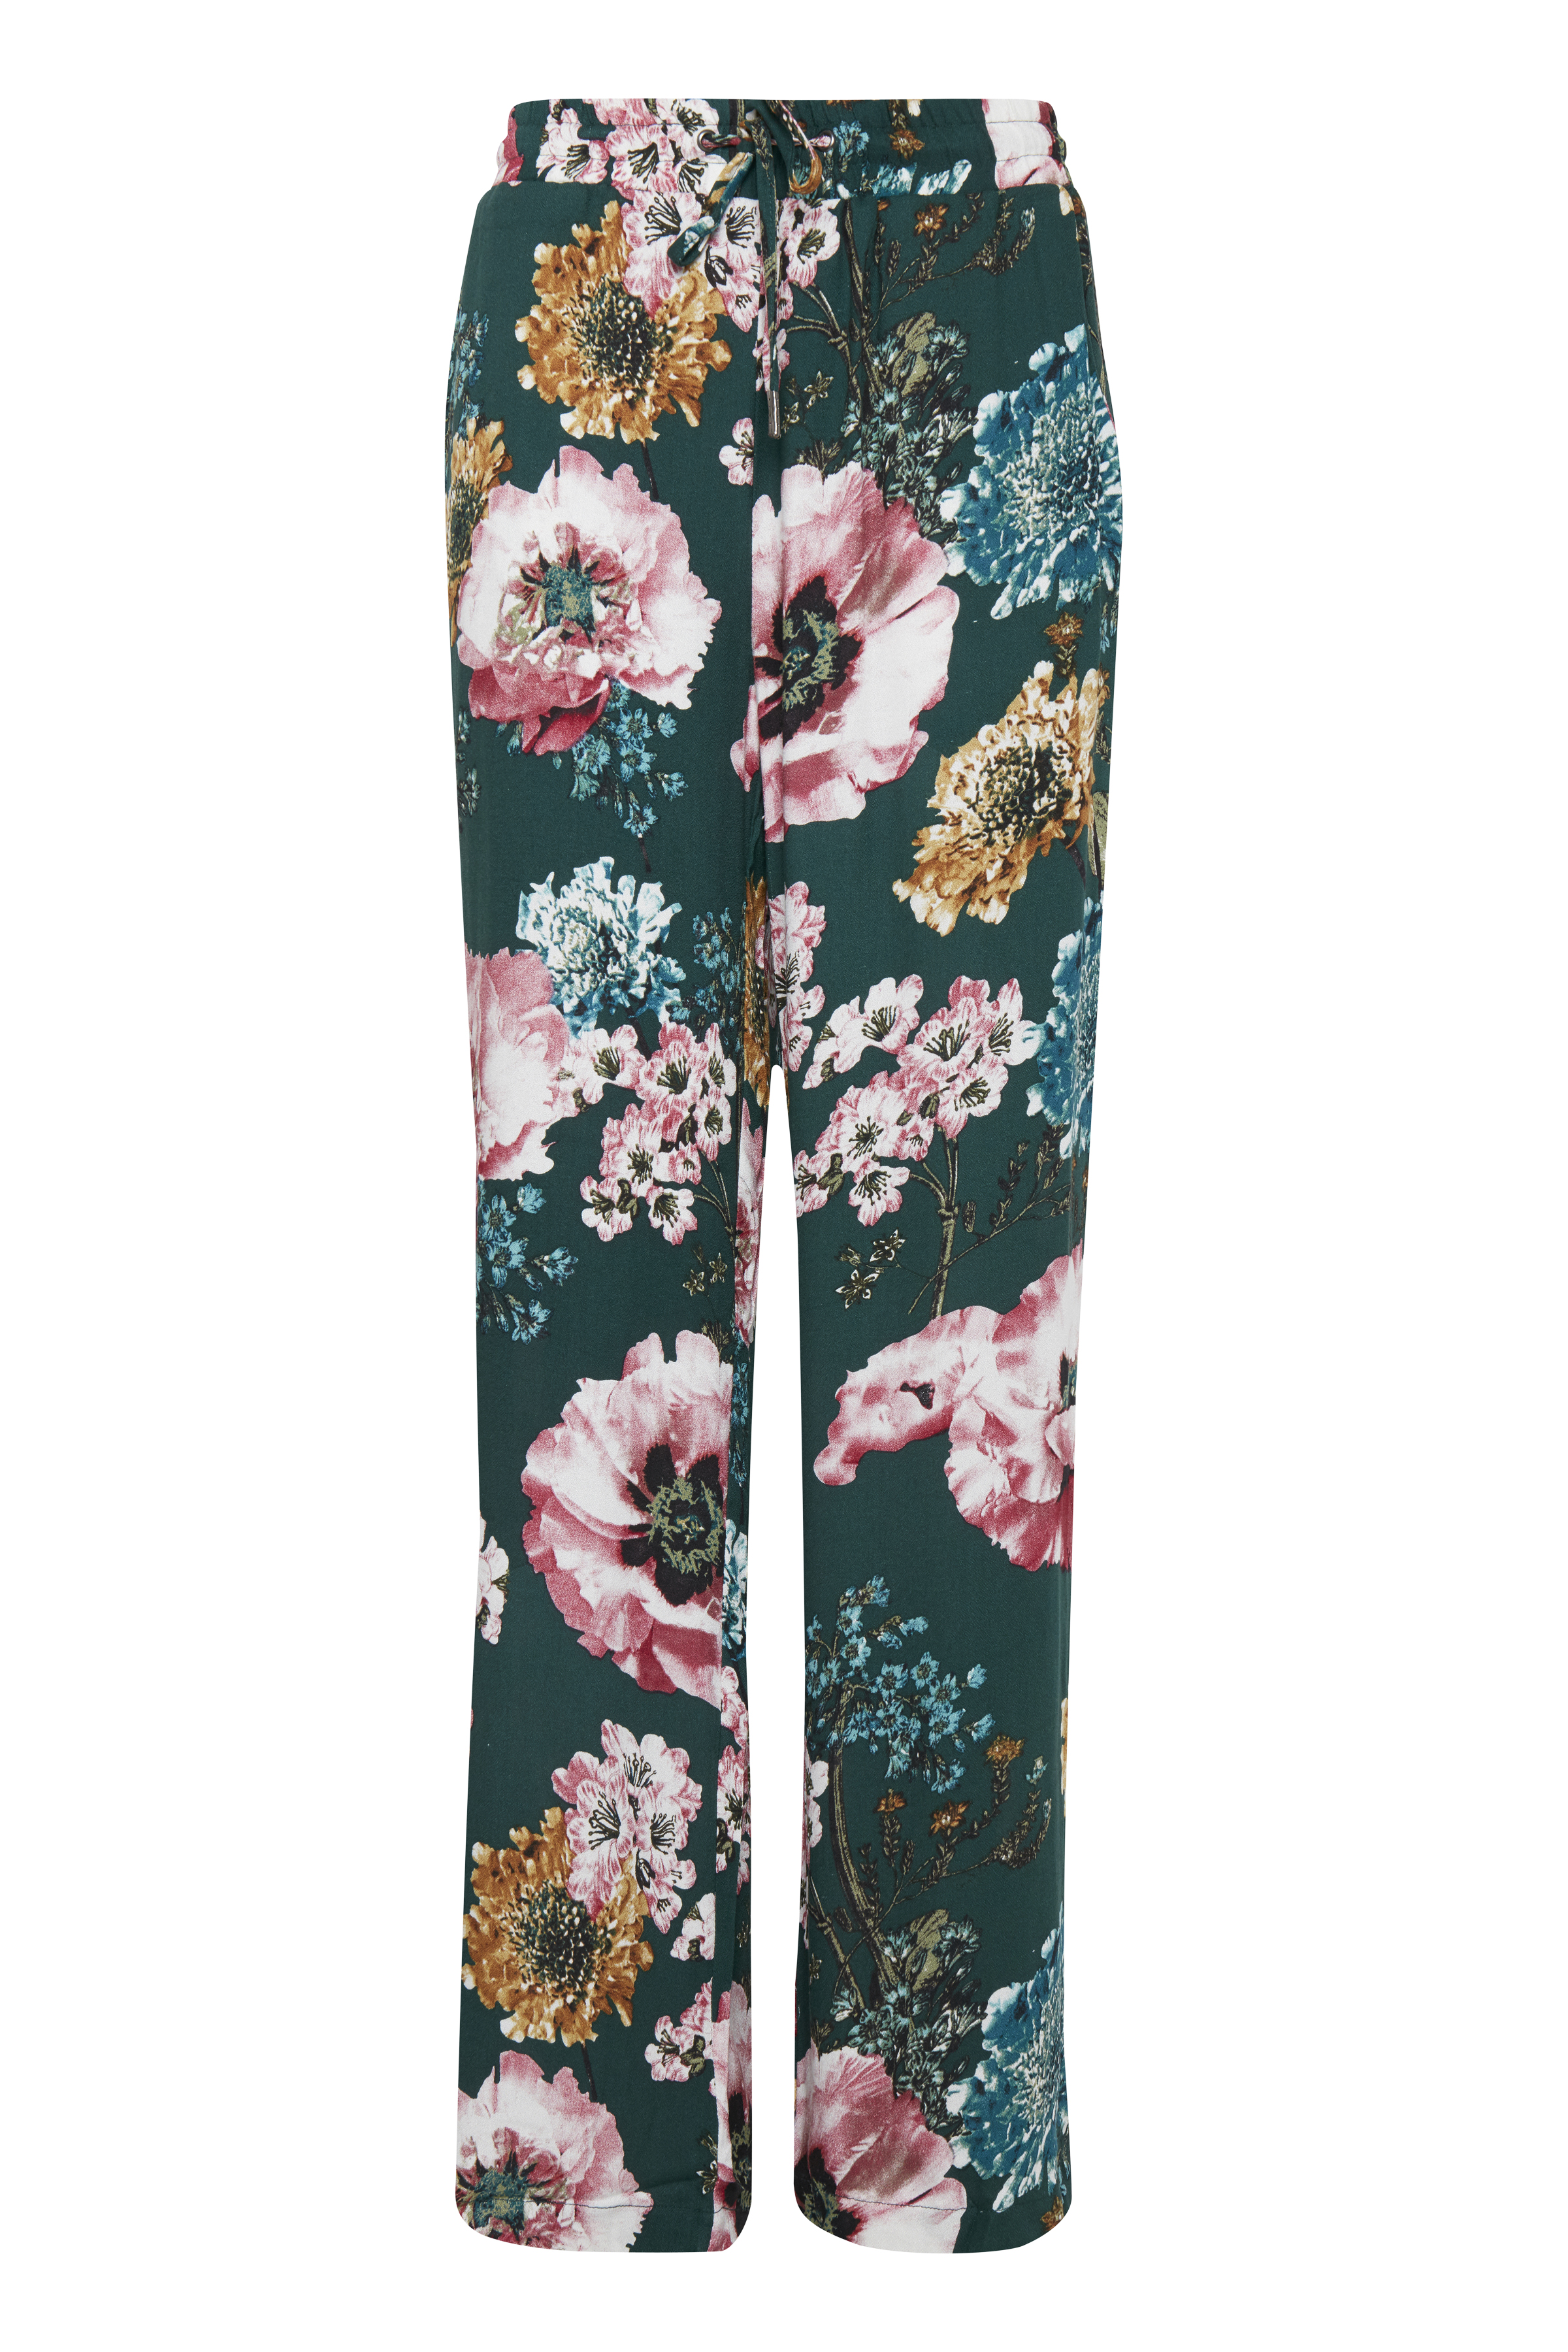 Pants Casual from b.young – Buy  Pants Casual from size 36-44 here